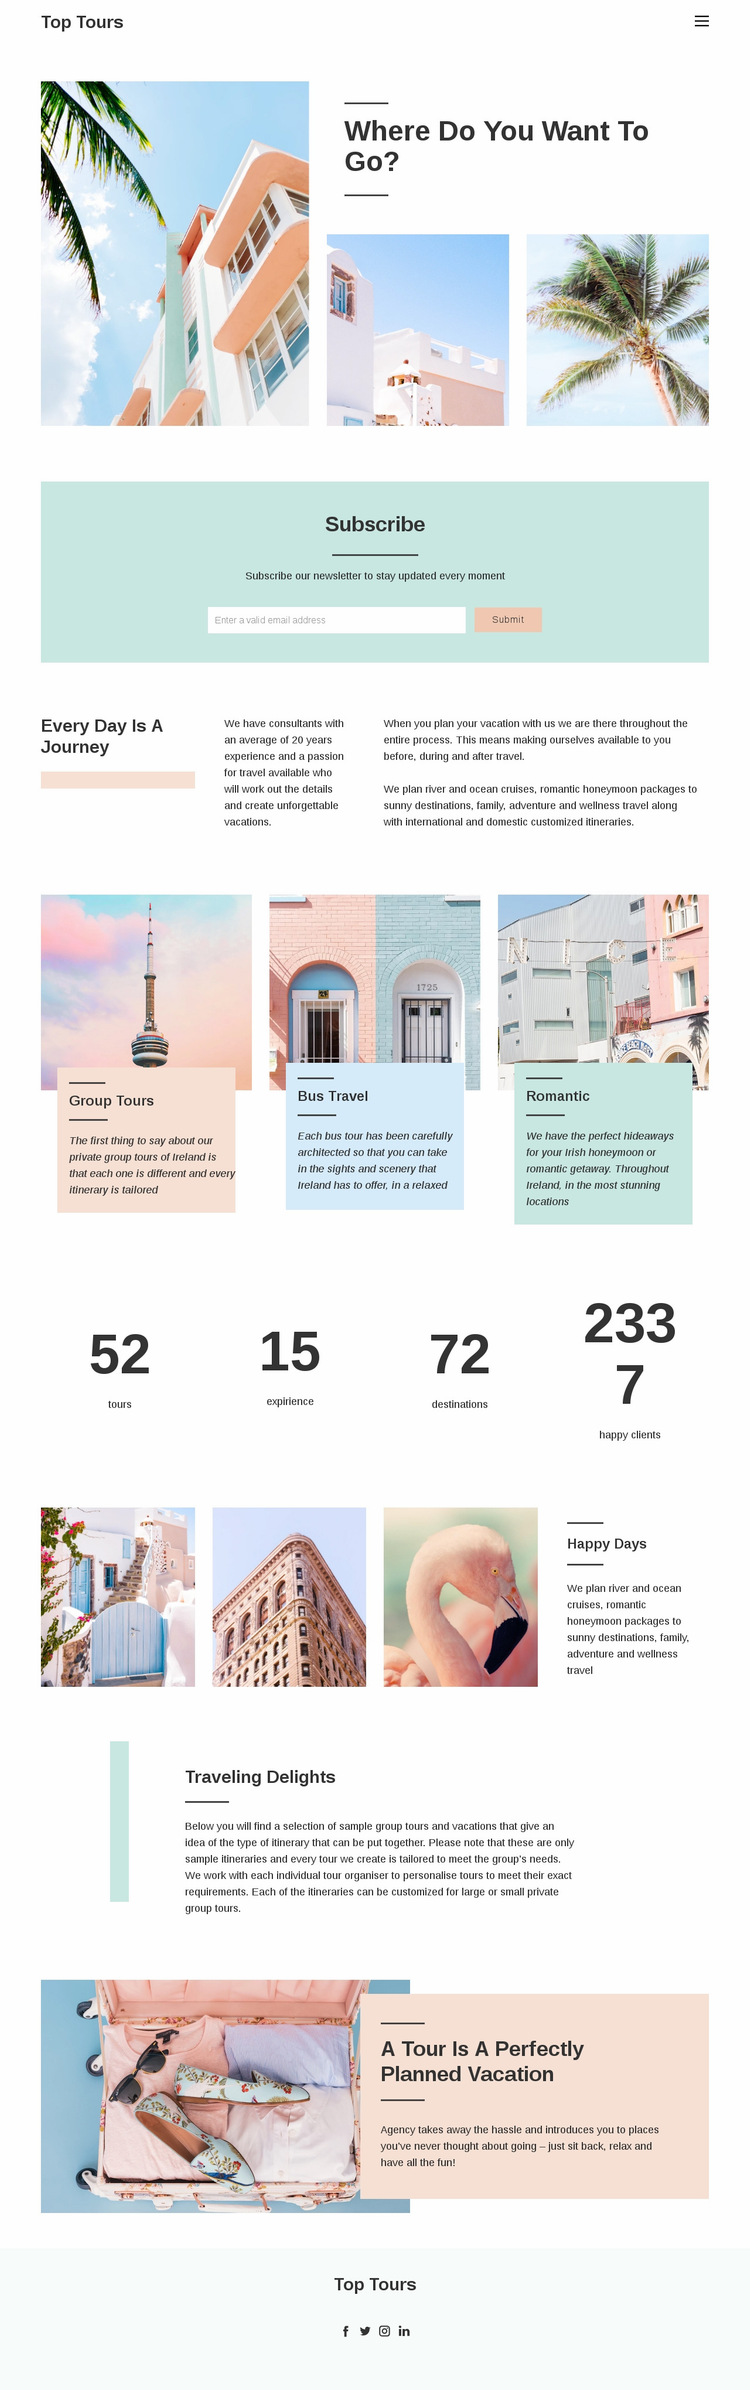 Future travel experience Web Page Design